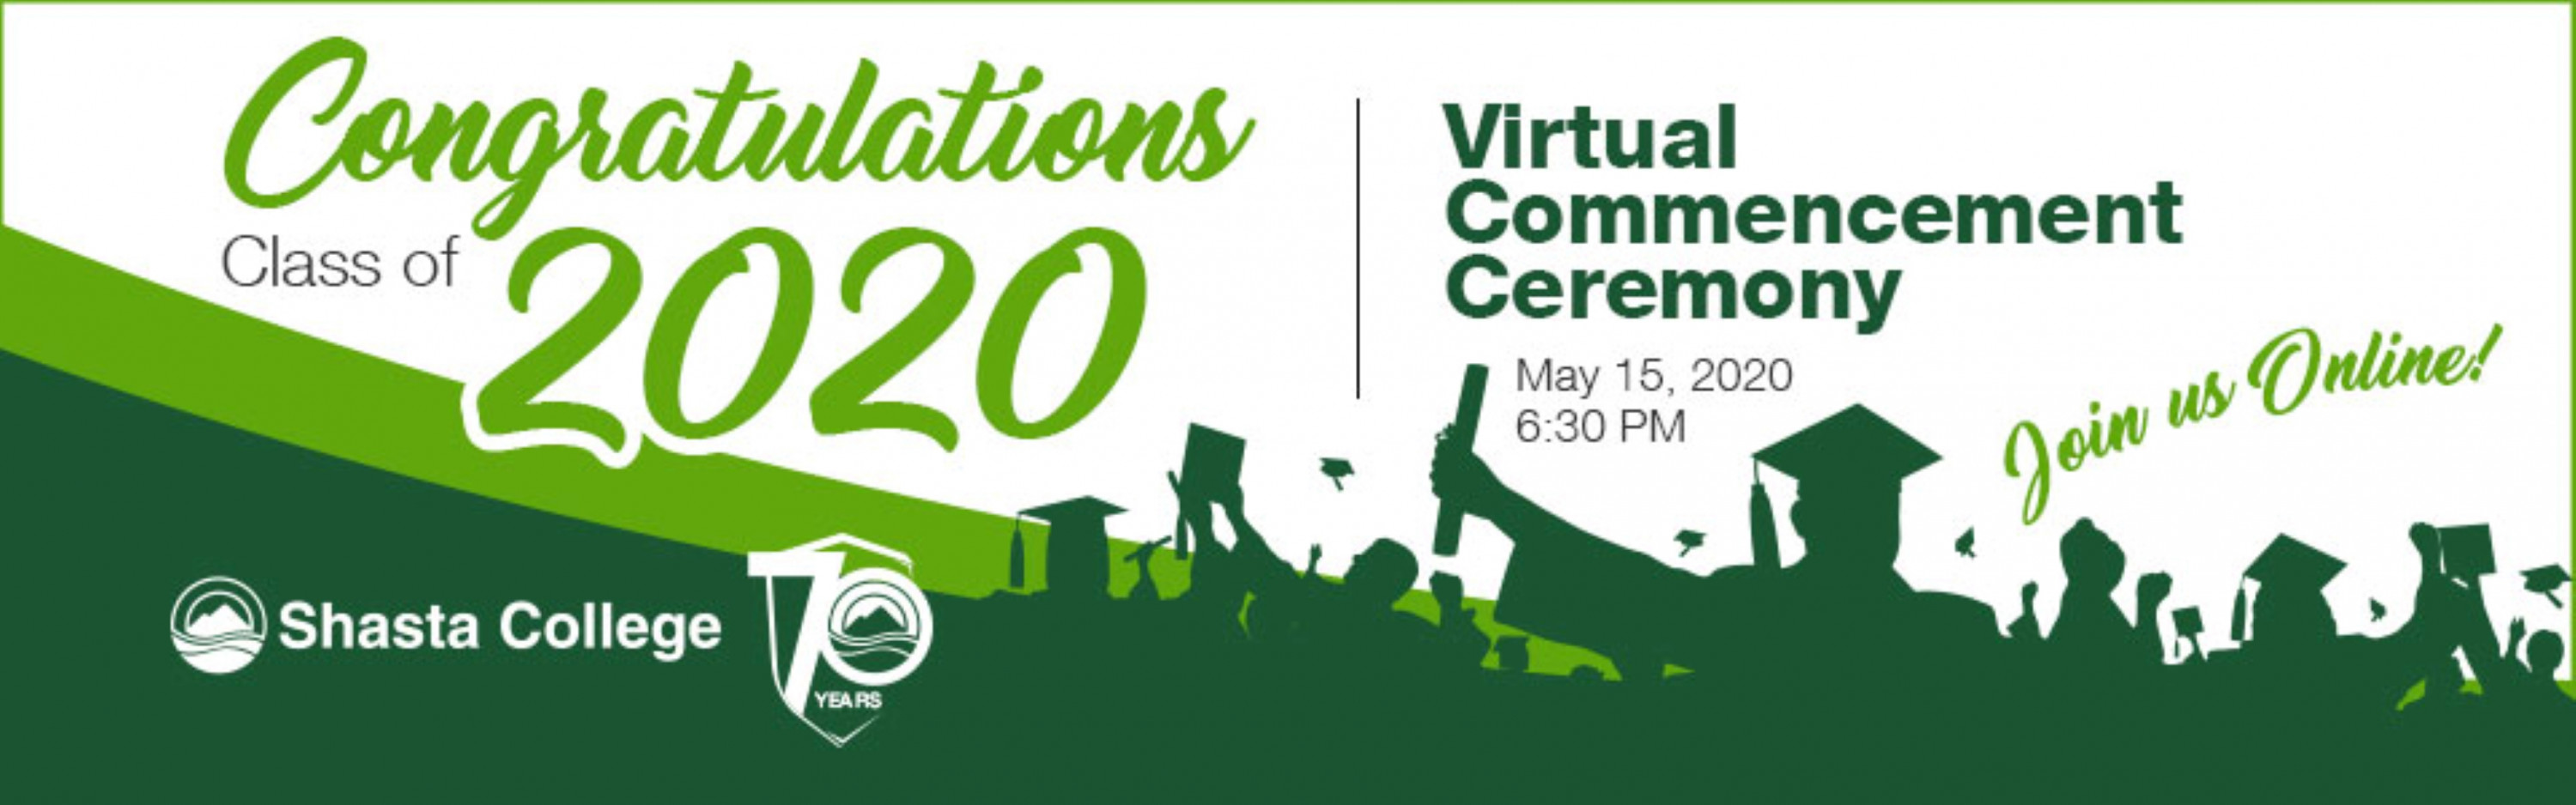 Graduation banner: Congratulations Class of 2020. Shasta College Virtual Commencement Ceremony: May 15, 2020 at 6:30 pm. Join us online!